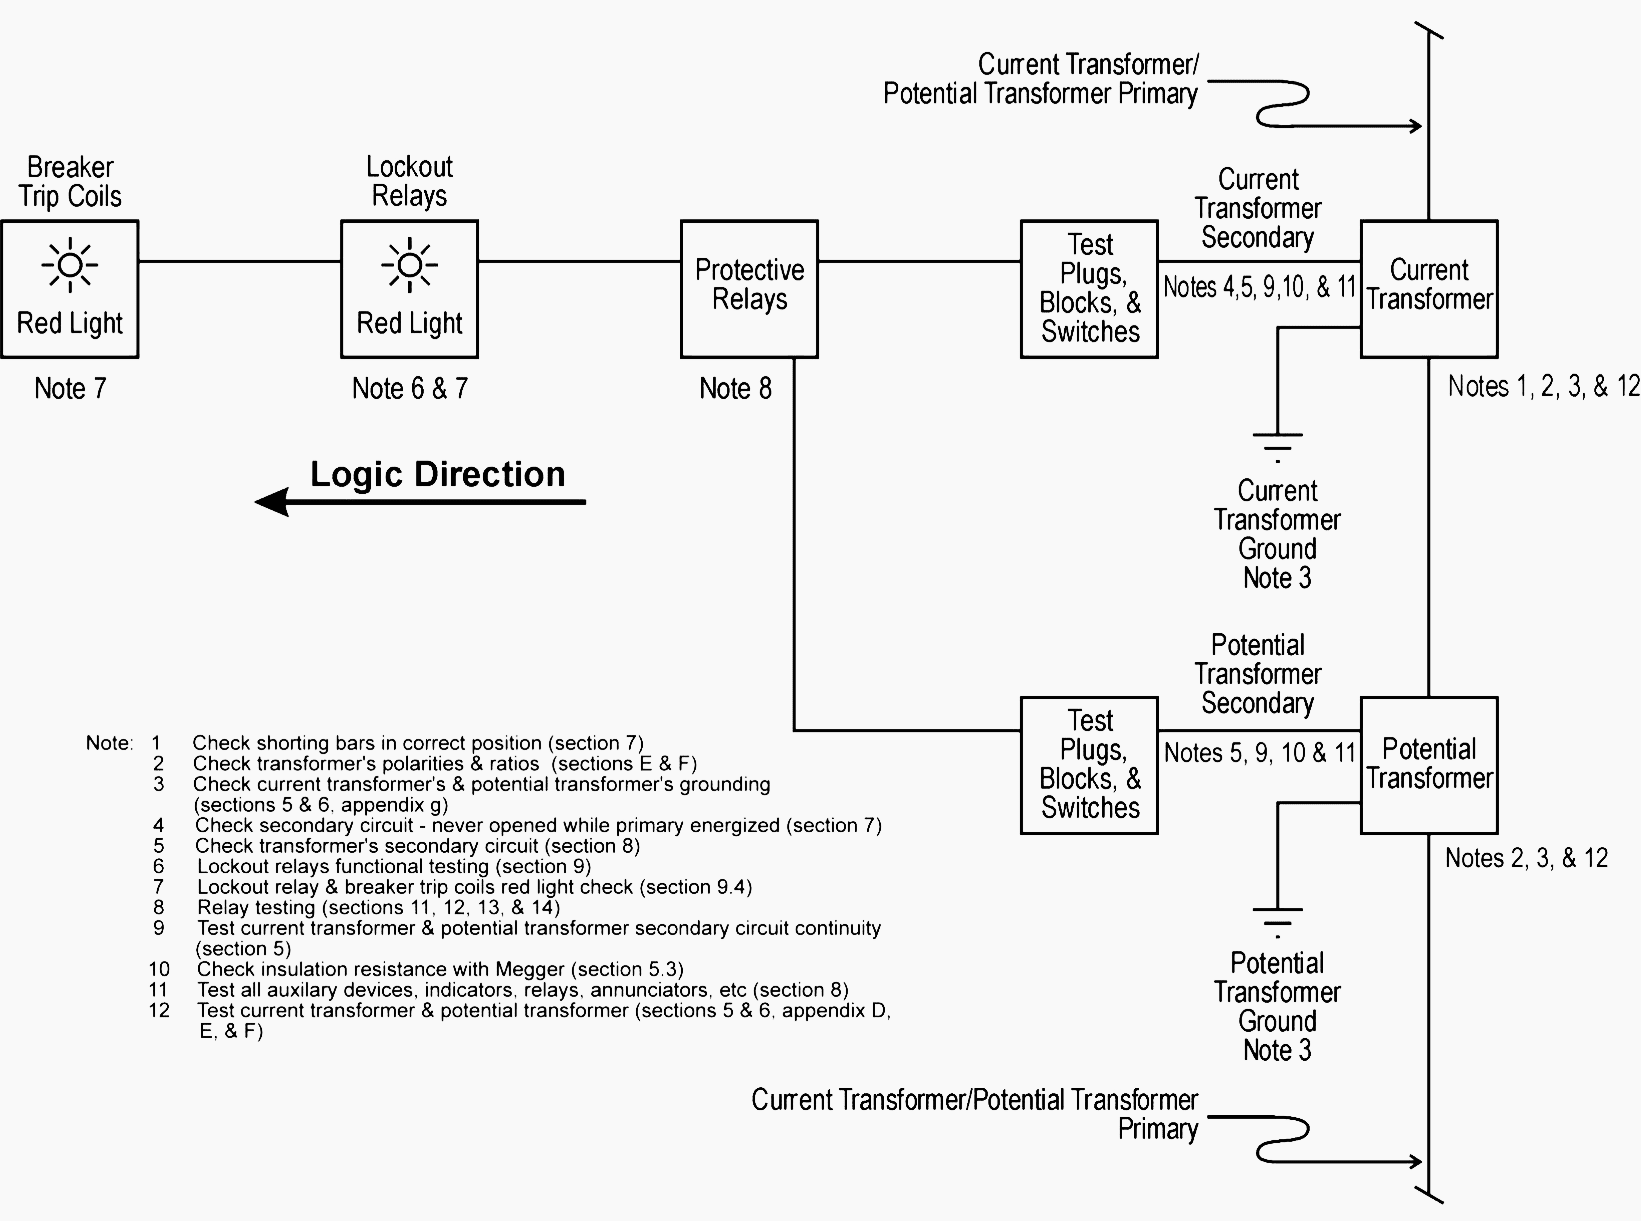 Total plant protection system functional testing block diagram